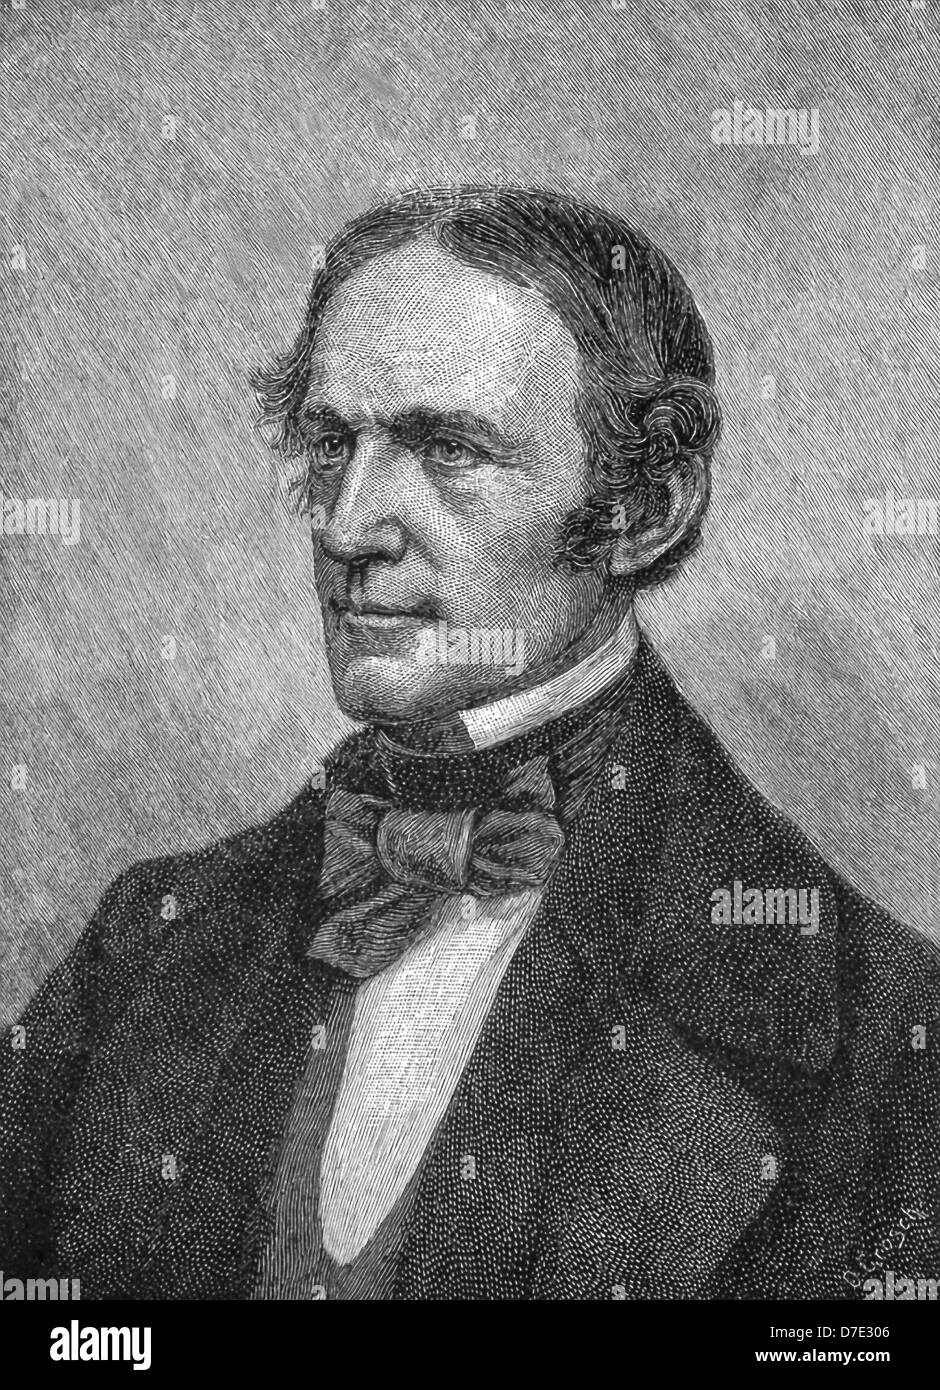 William Hickling Prescott (1796- 1859), first American scientific historian, was also an Hispanist. - Stock Image